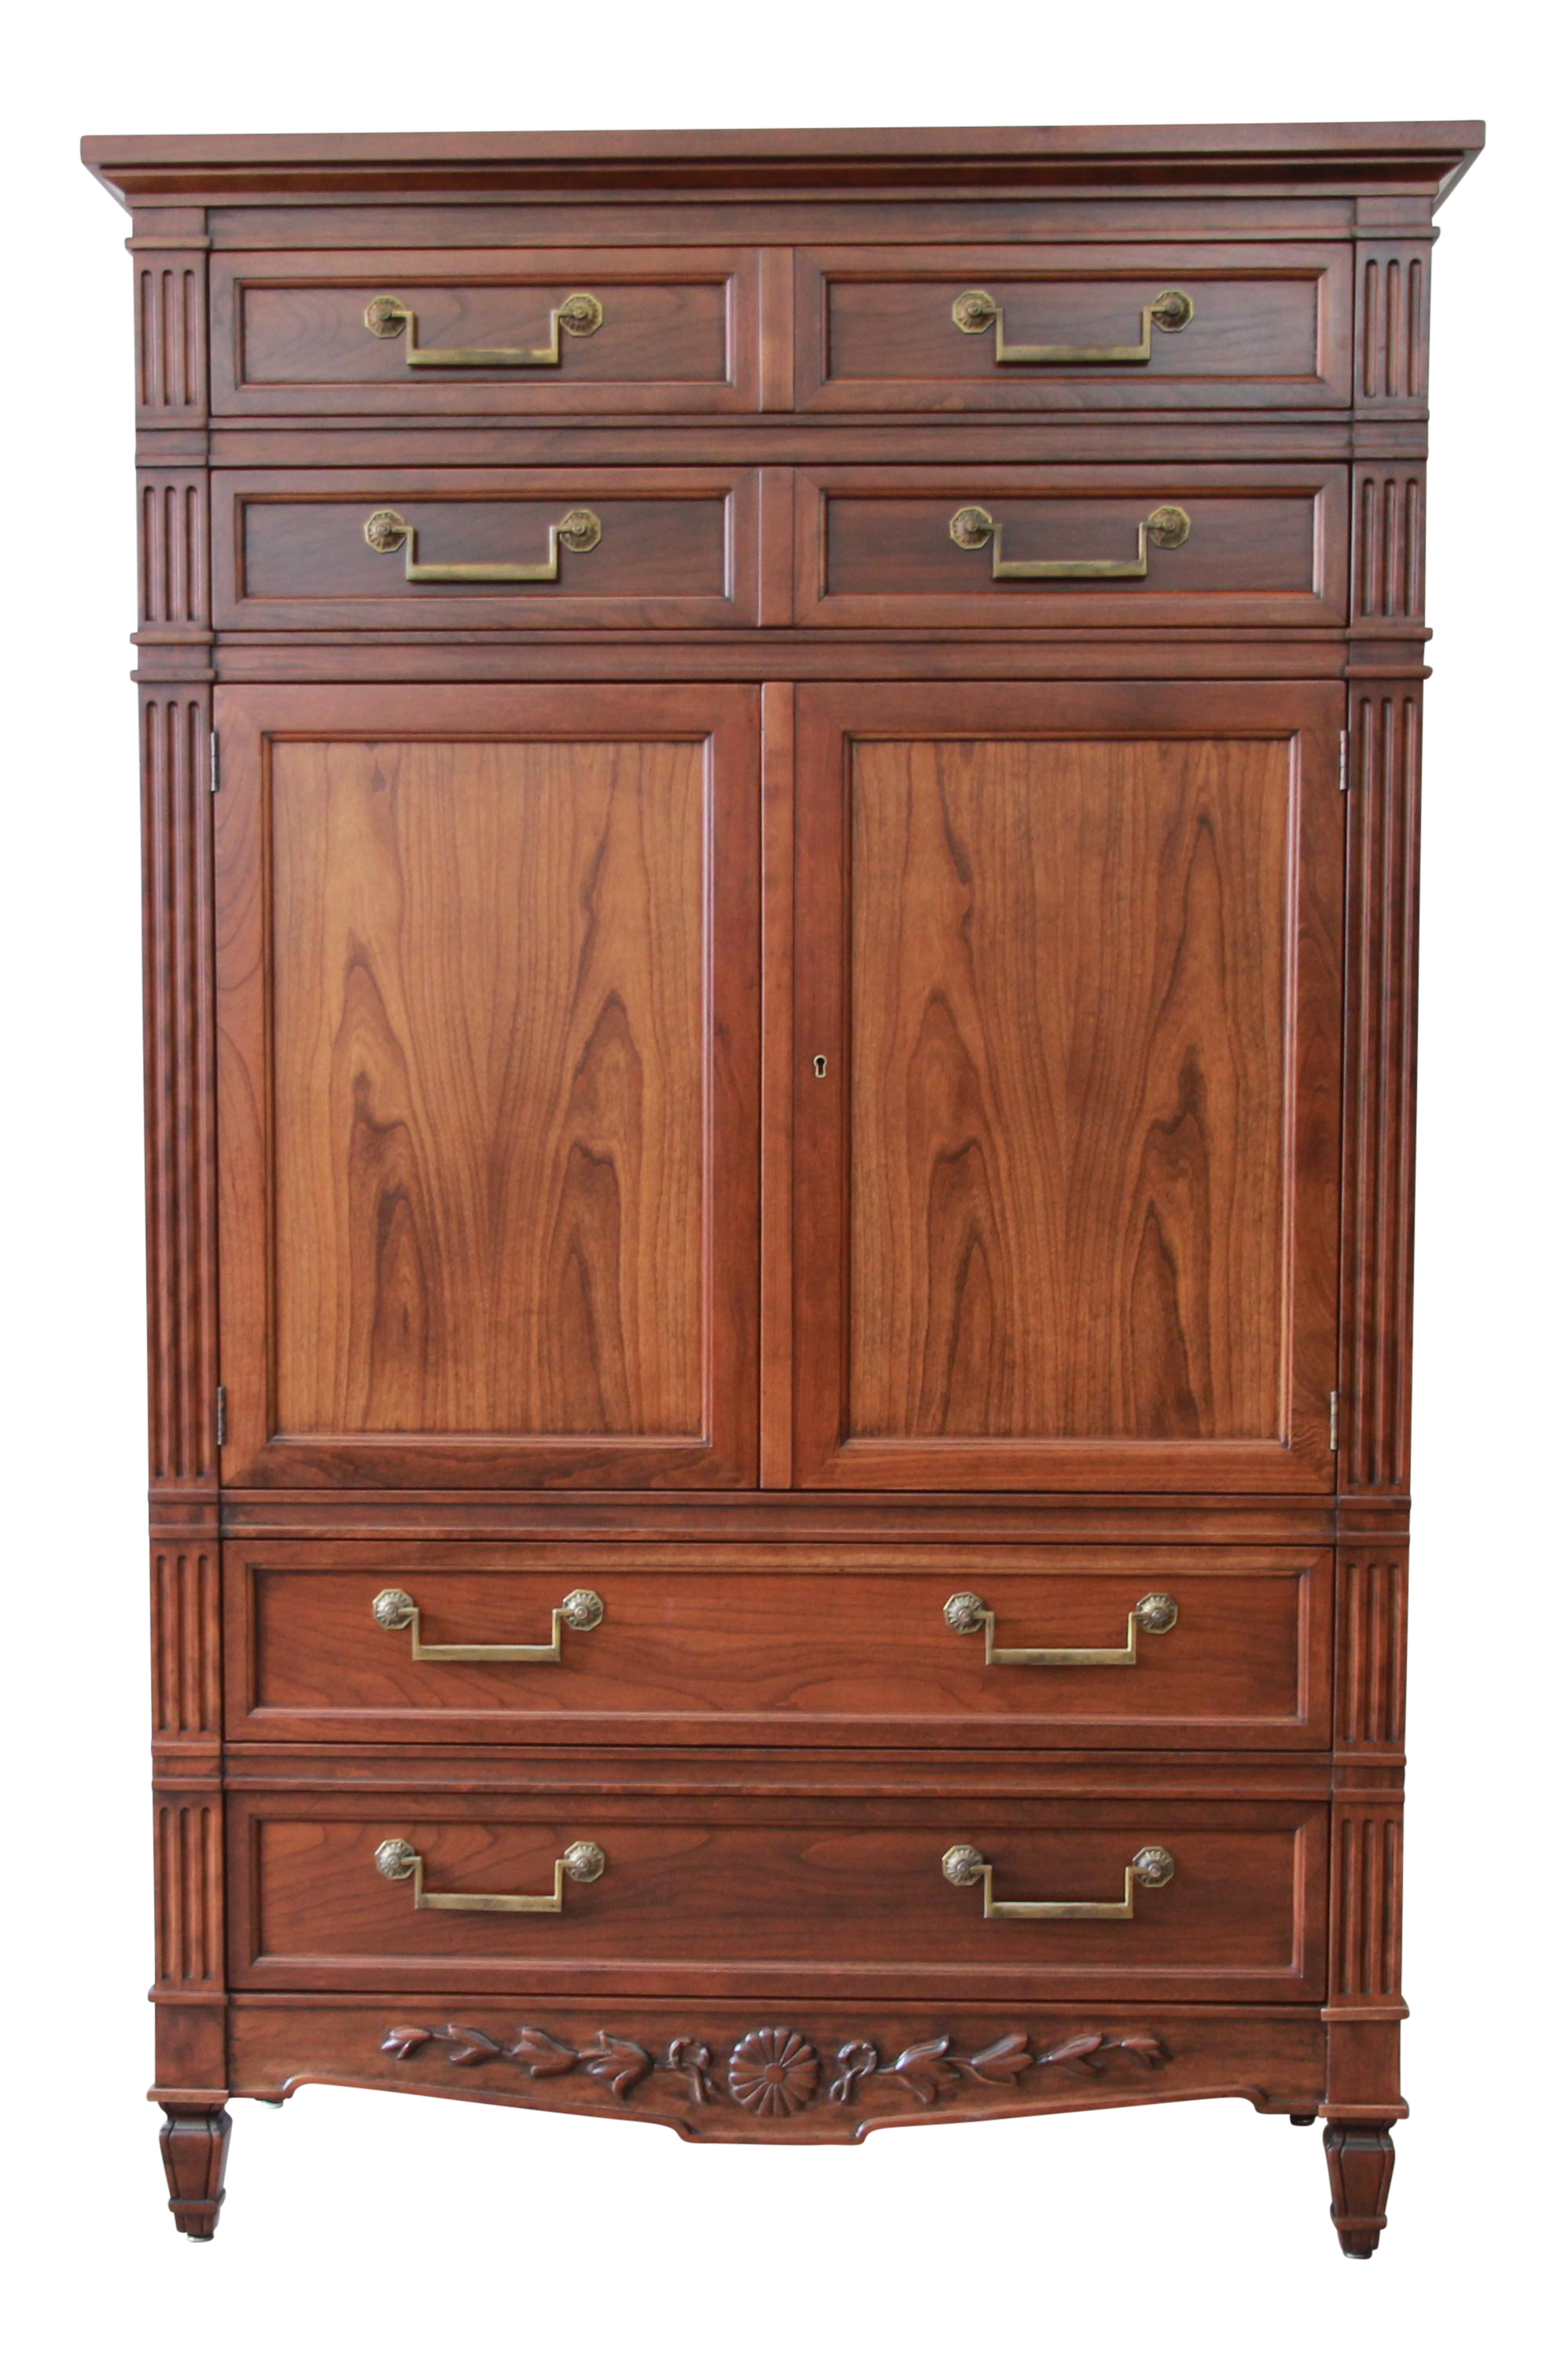 Genial Baker Furniture French Regency Style Cherry Wood Armoire Dresser Chest